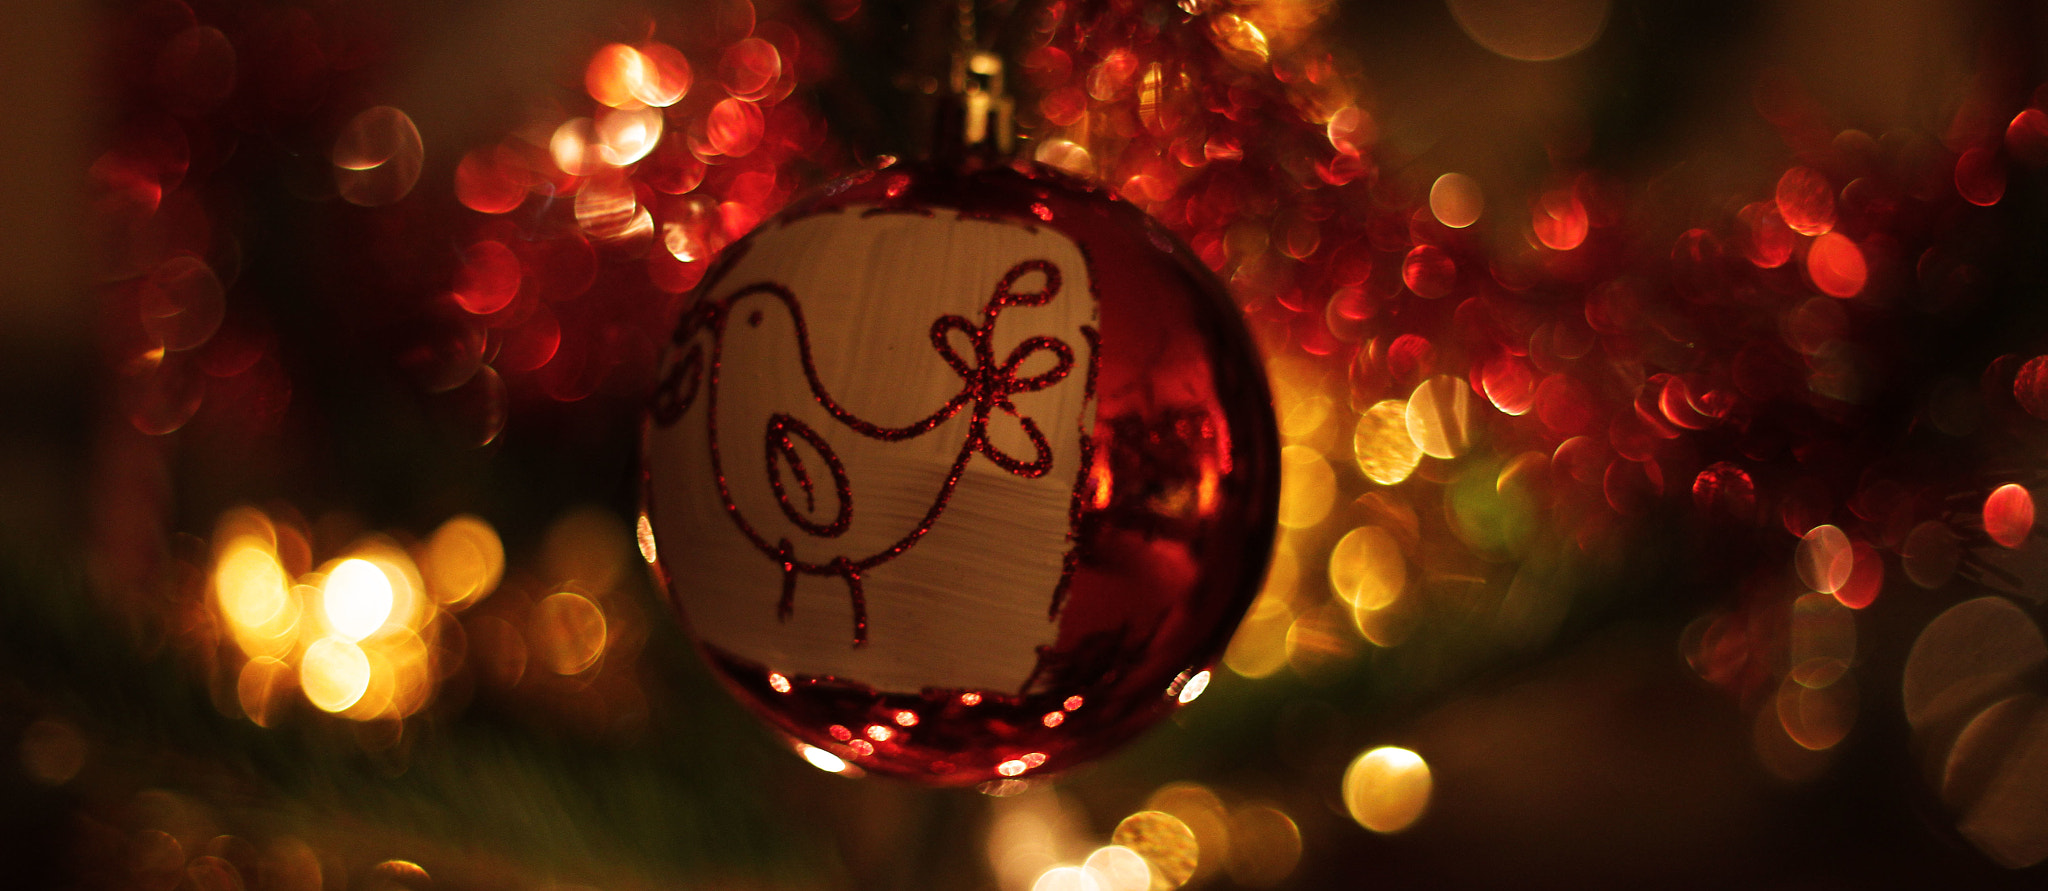 Photograph Christmas! by Matthew Edge on 500px